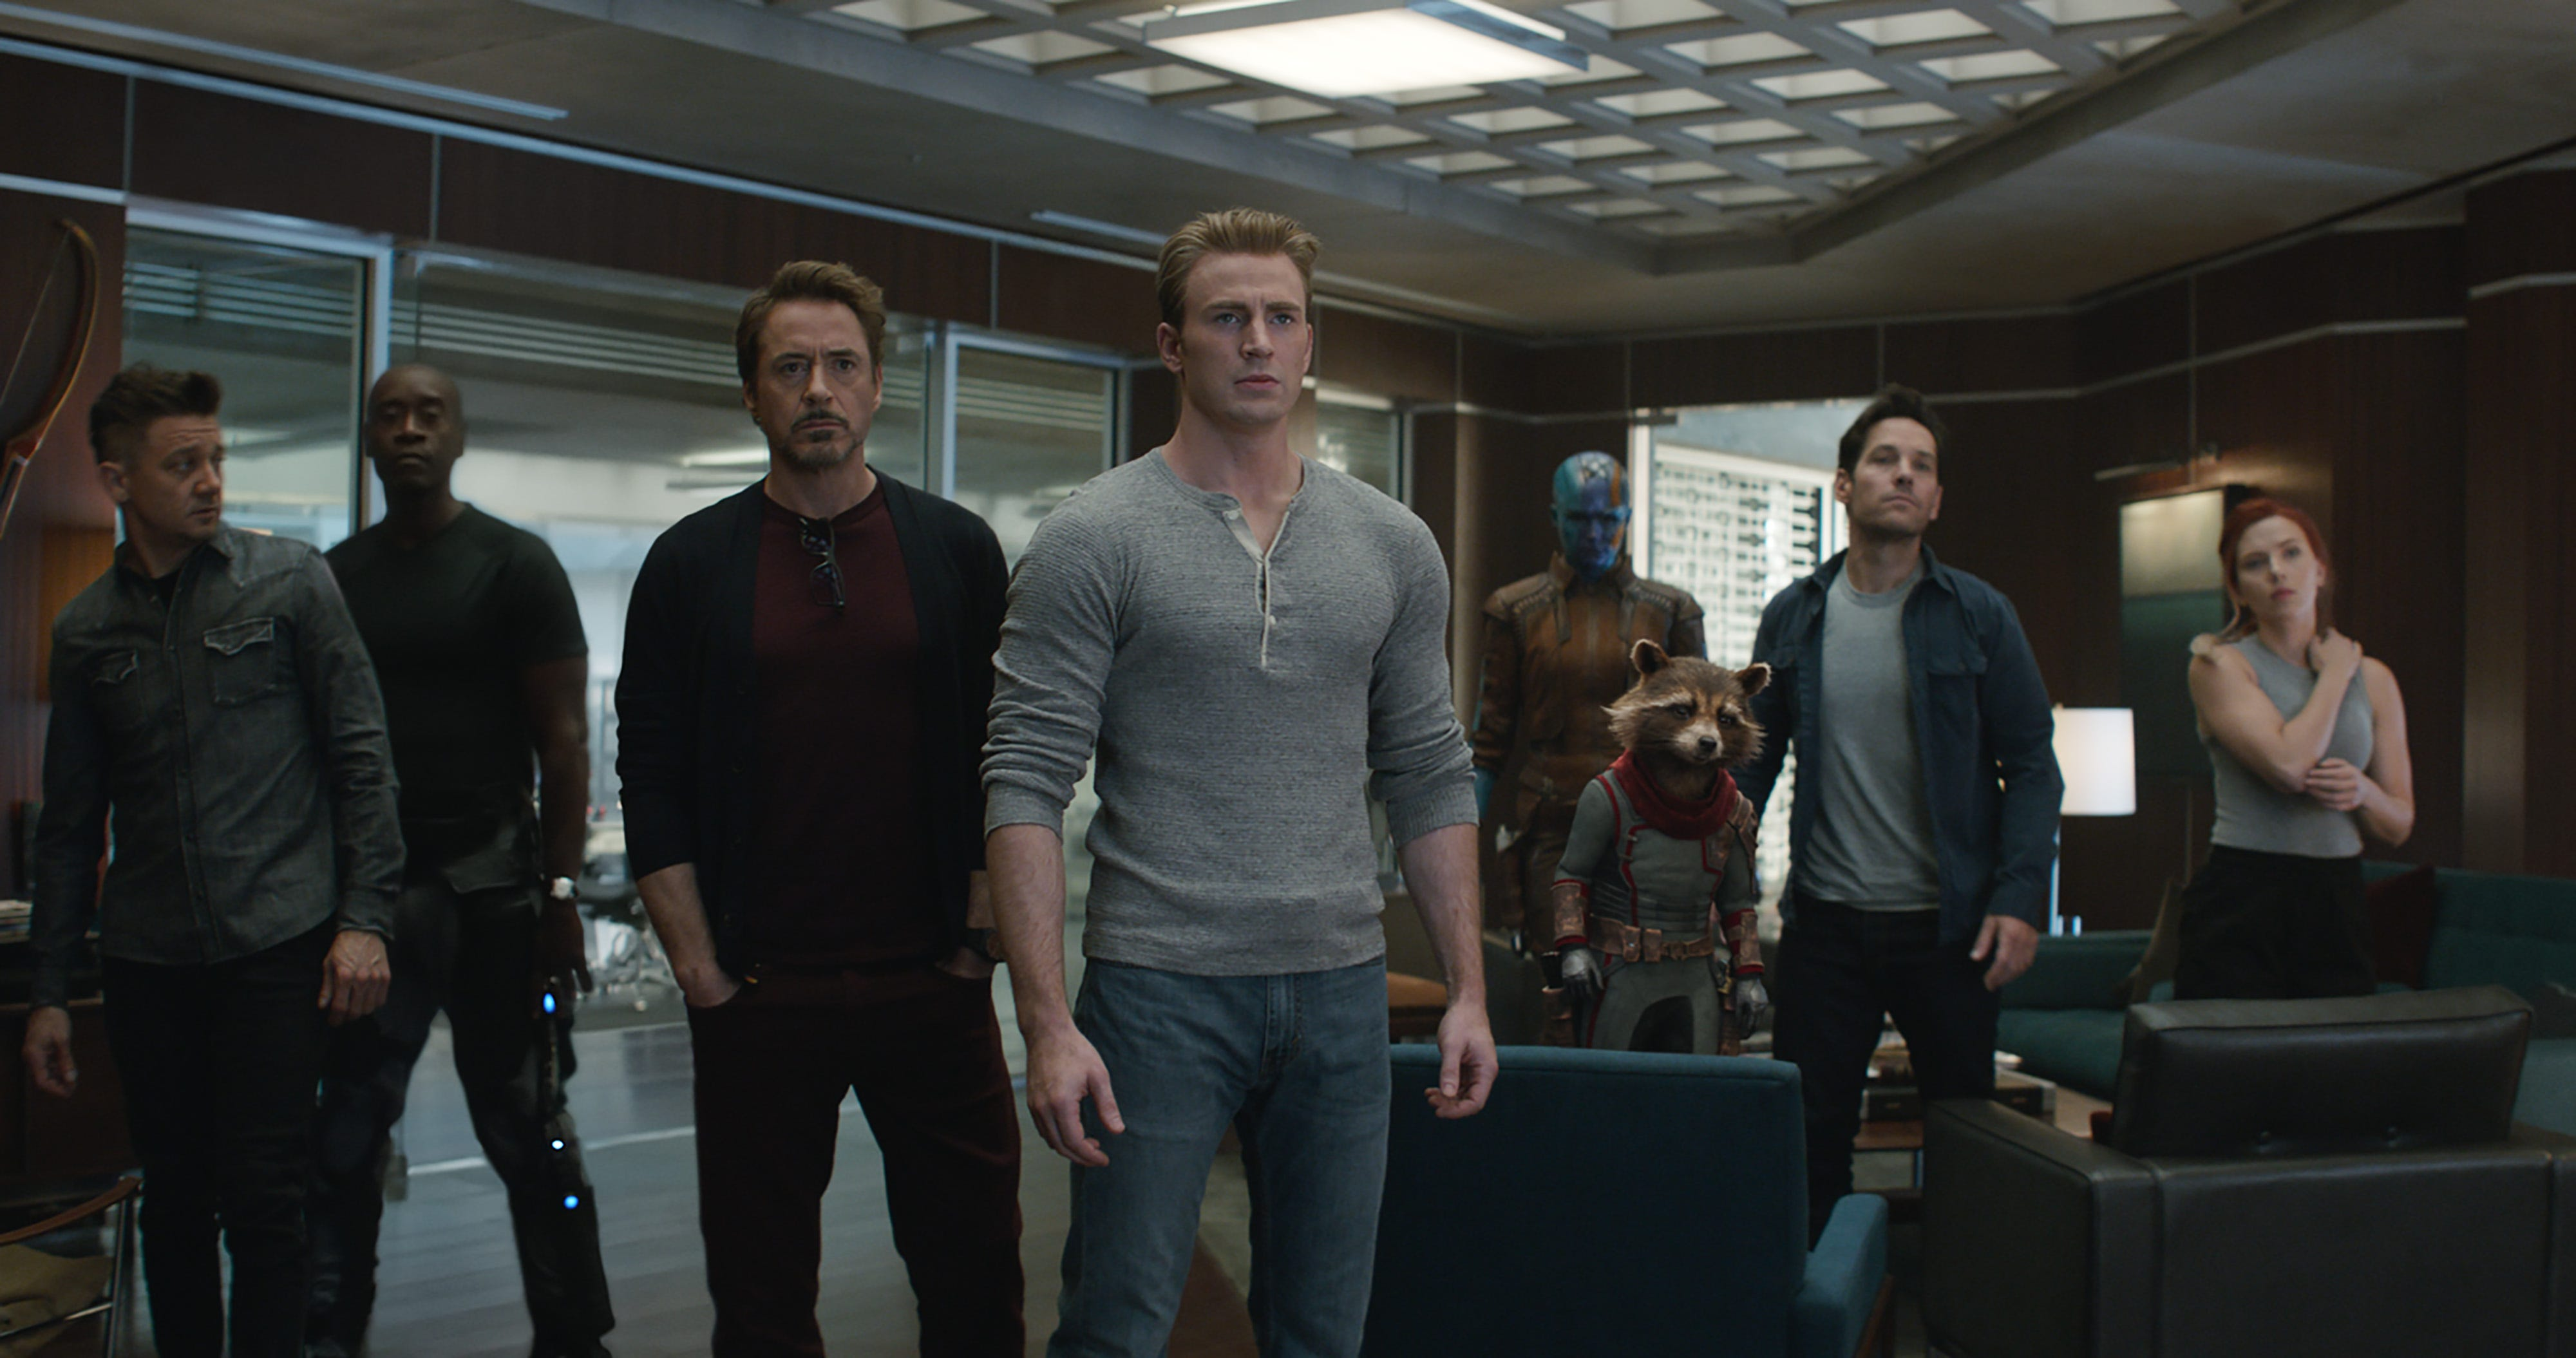 Avengers Endgame Why Marvel Blew Past Star Wars In Fans Hearts